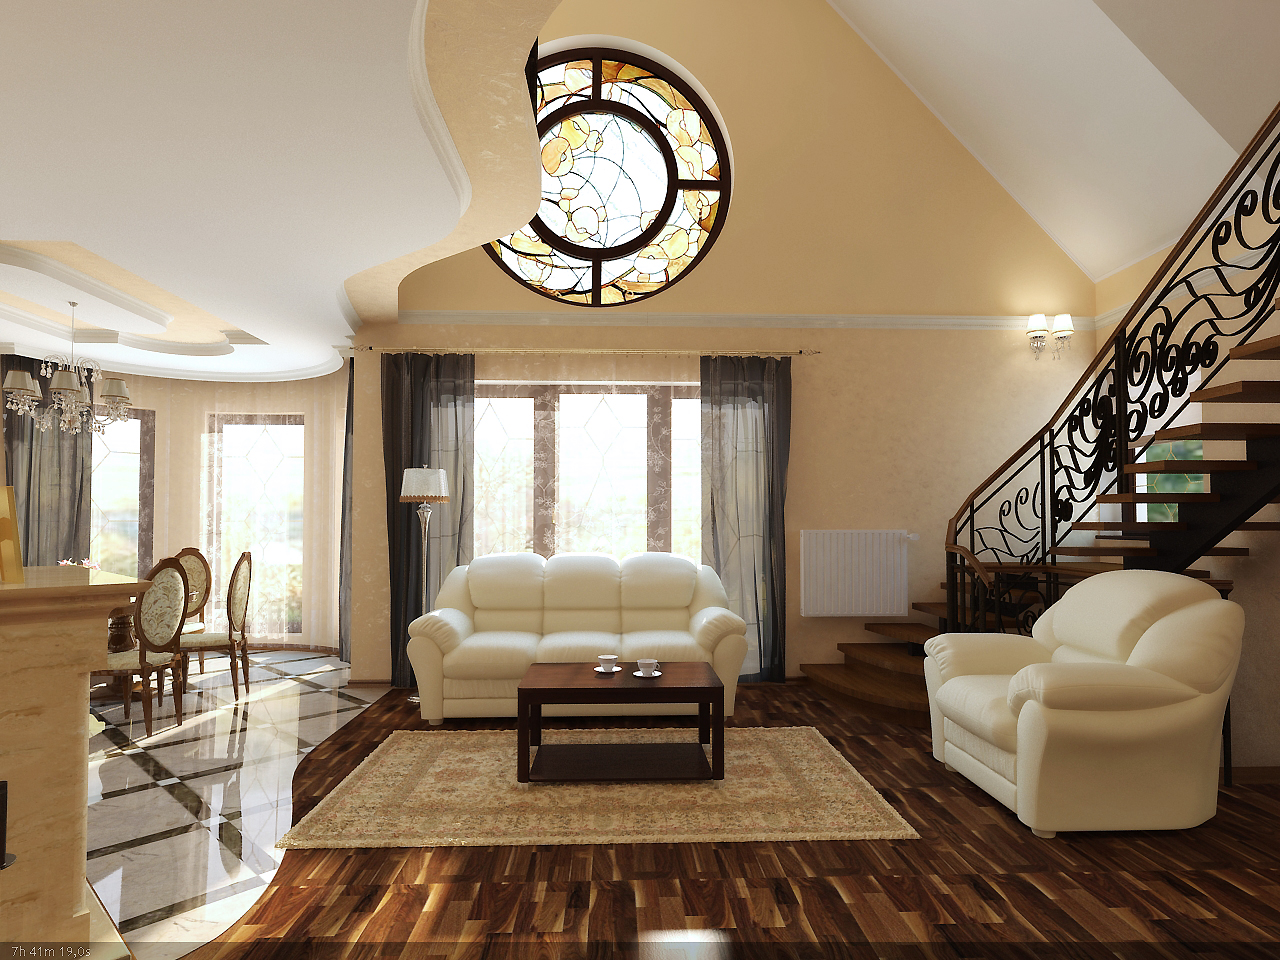 Interior Decor classic interior design